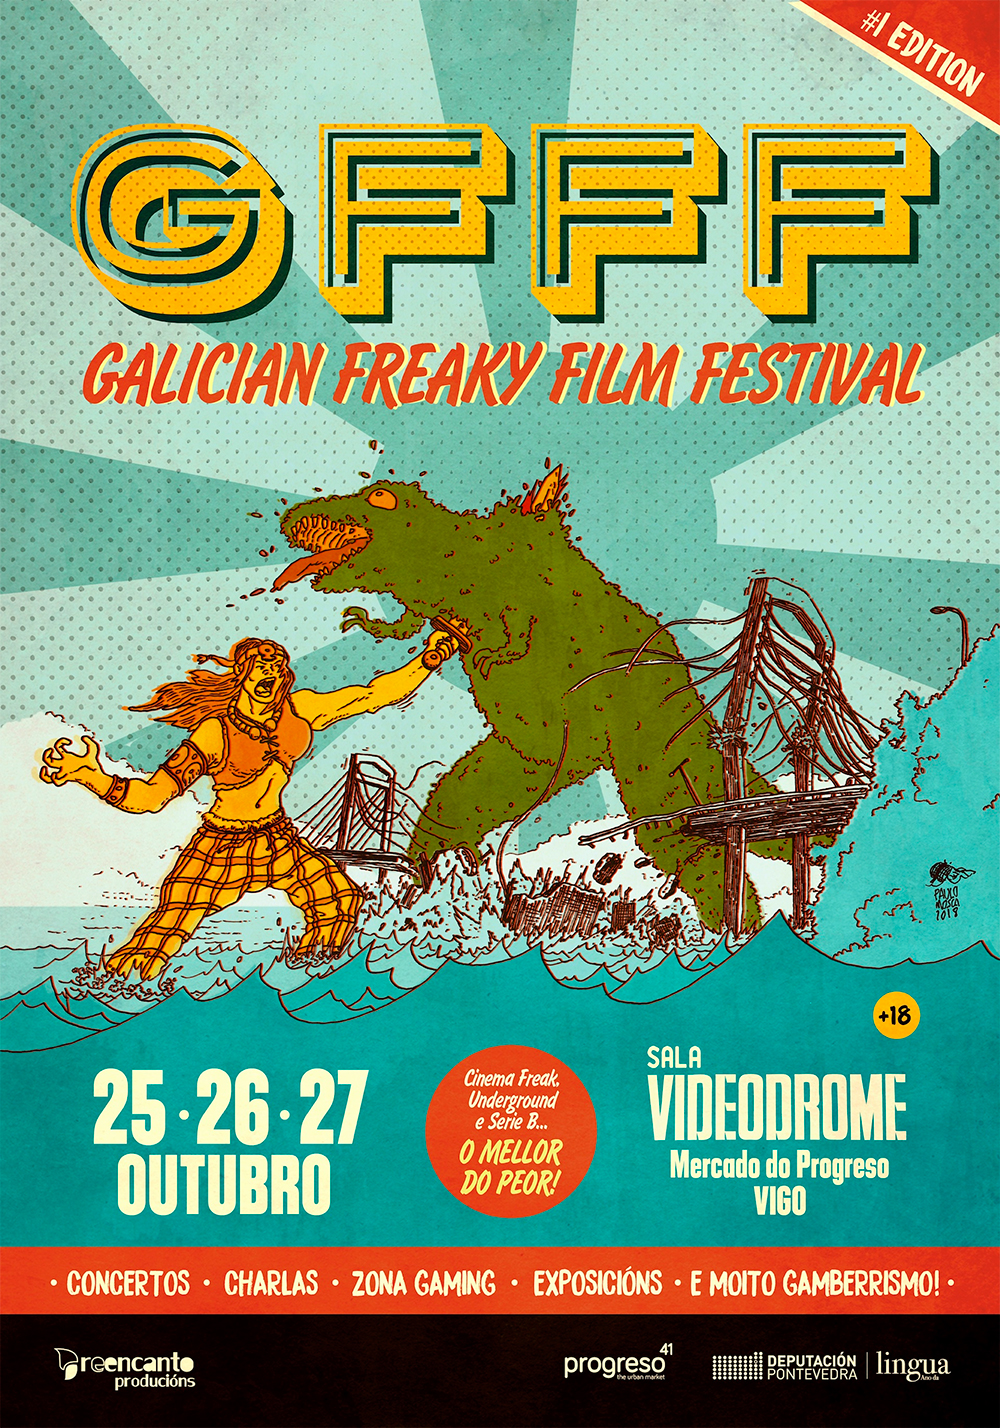 Galician Freaky Film Festival-Cartaz-Edicion-1